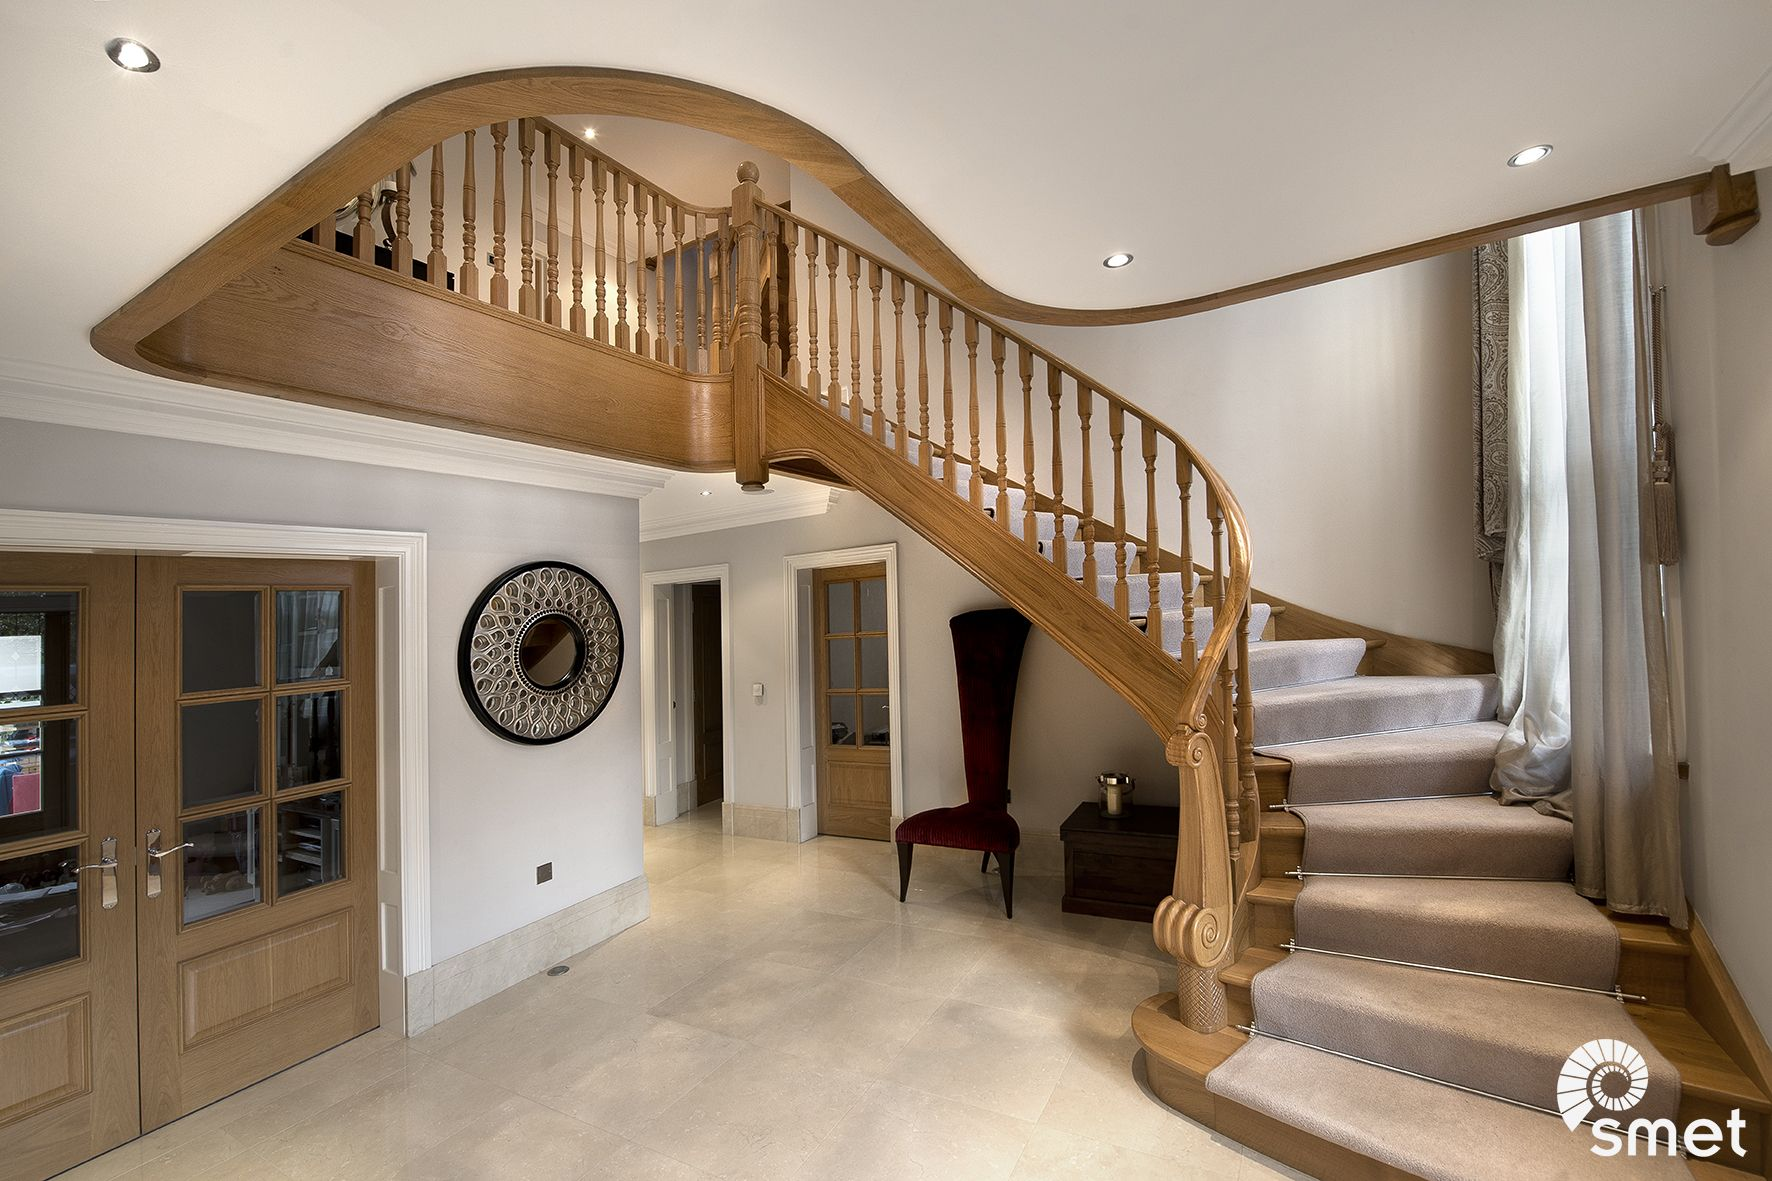 Best What Do You Think Of This Solid French Oak Staircase With 400 x 300